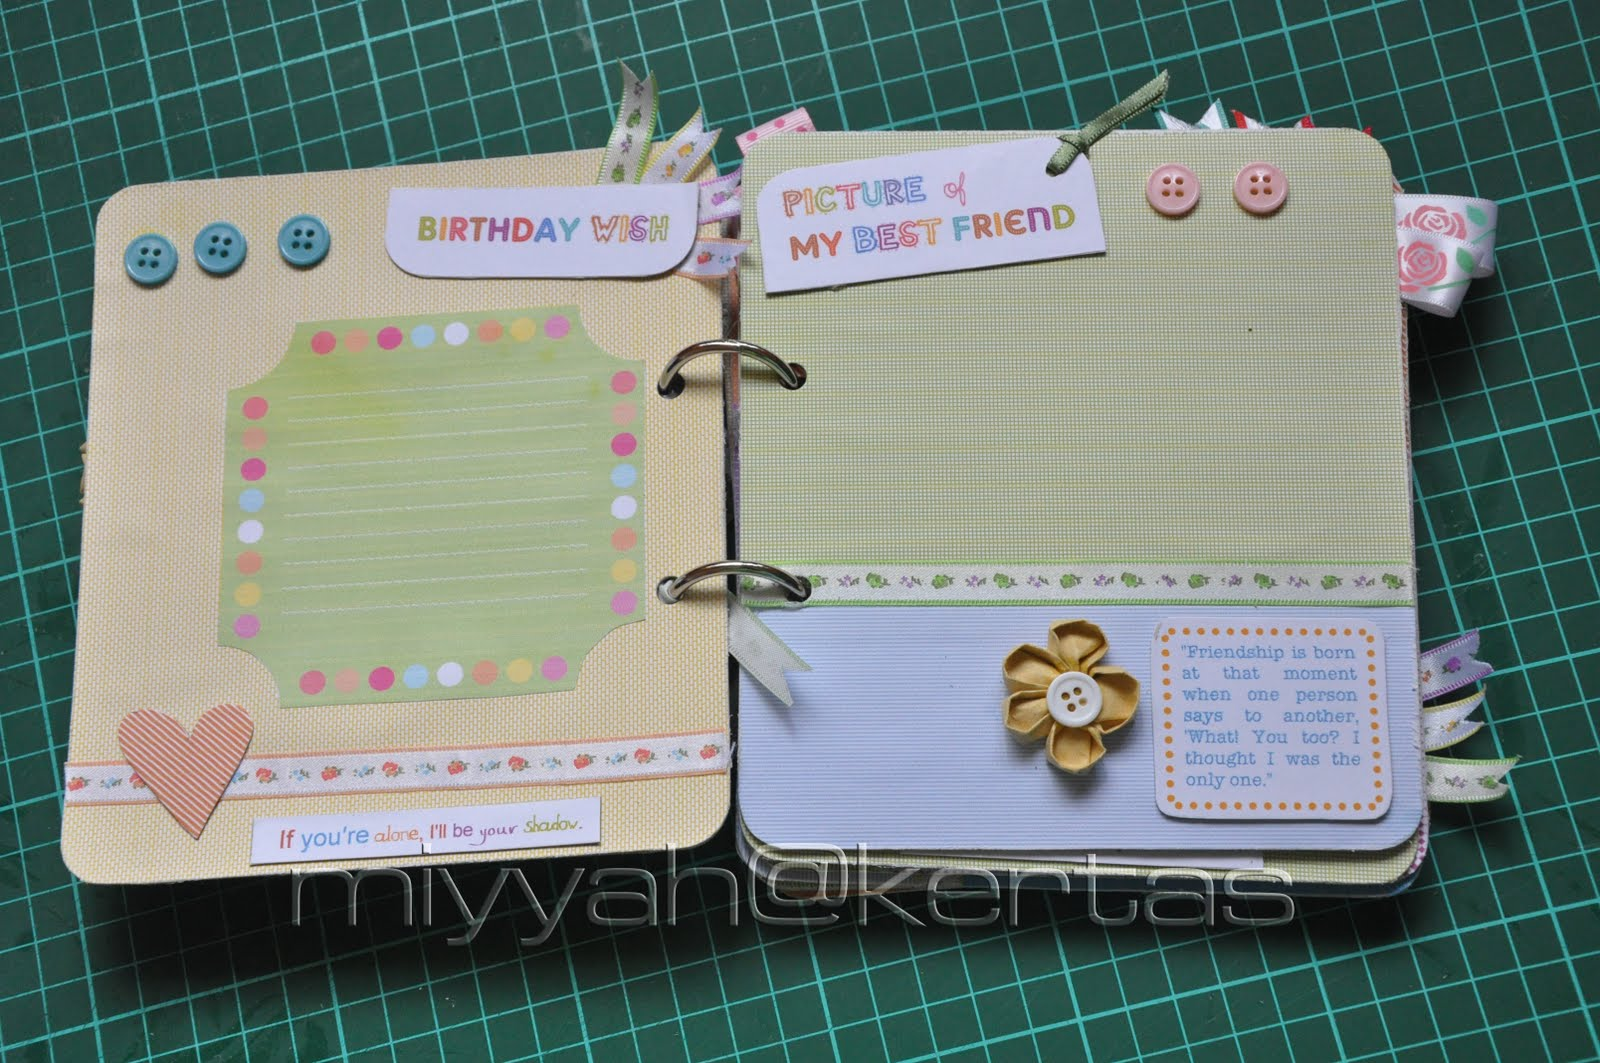 How to scrapbook at home - How To Make Scrapbook Album At Home I M Very Proud To Say That All The